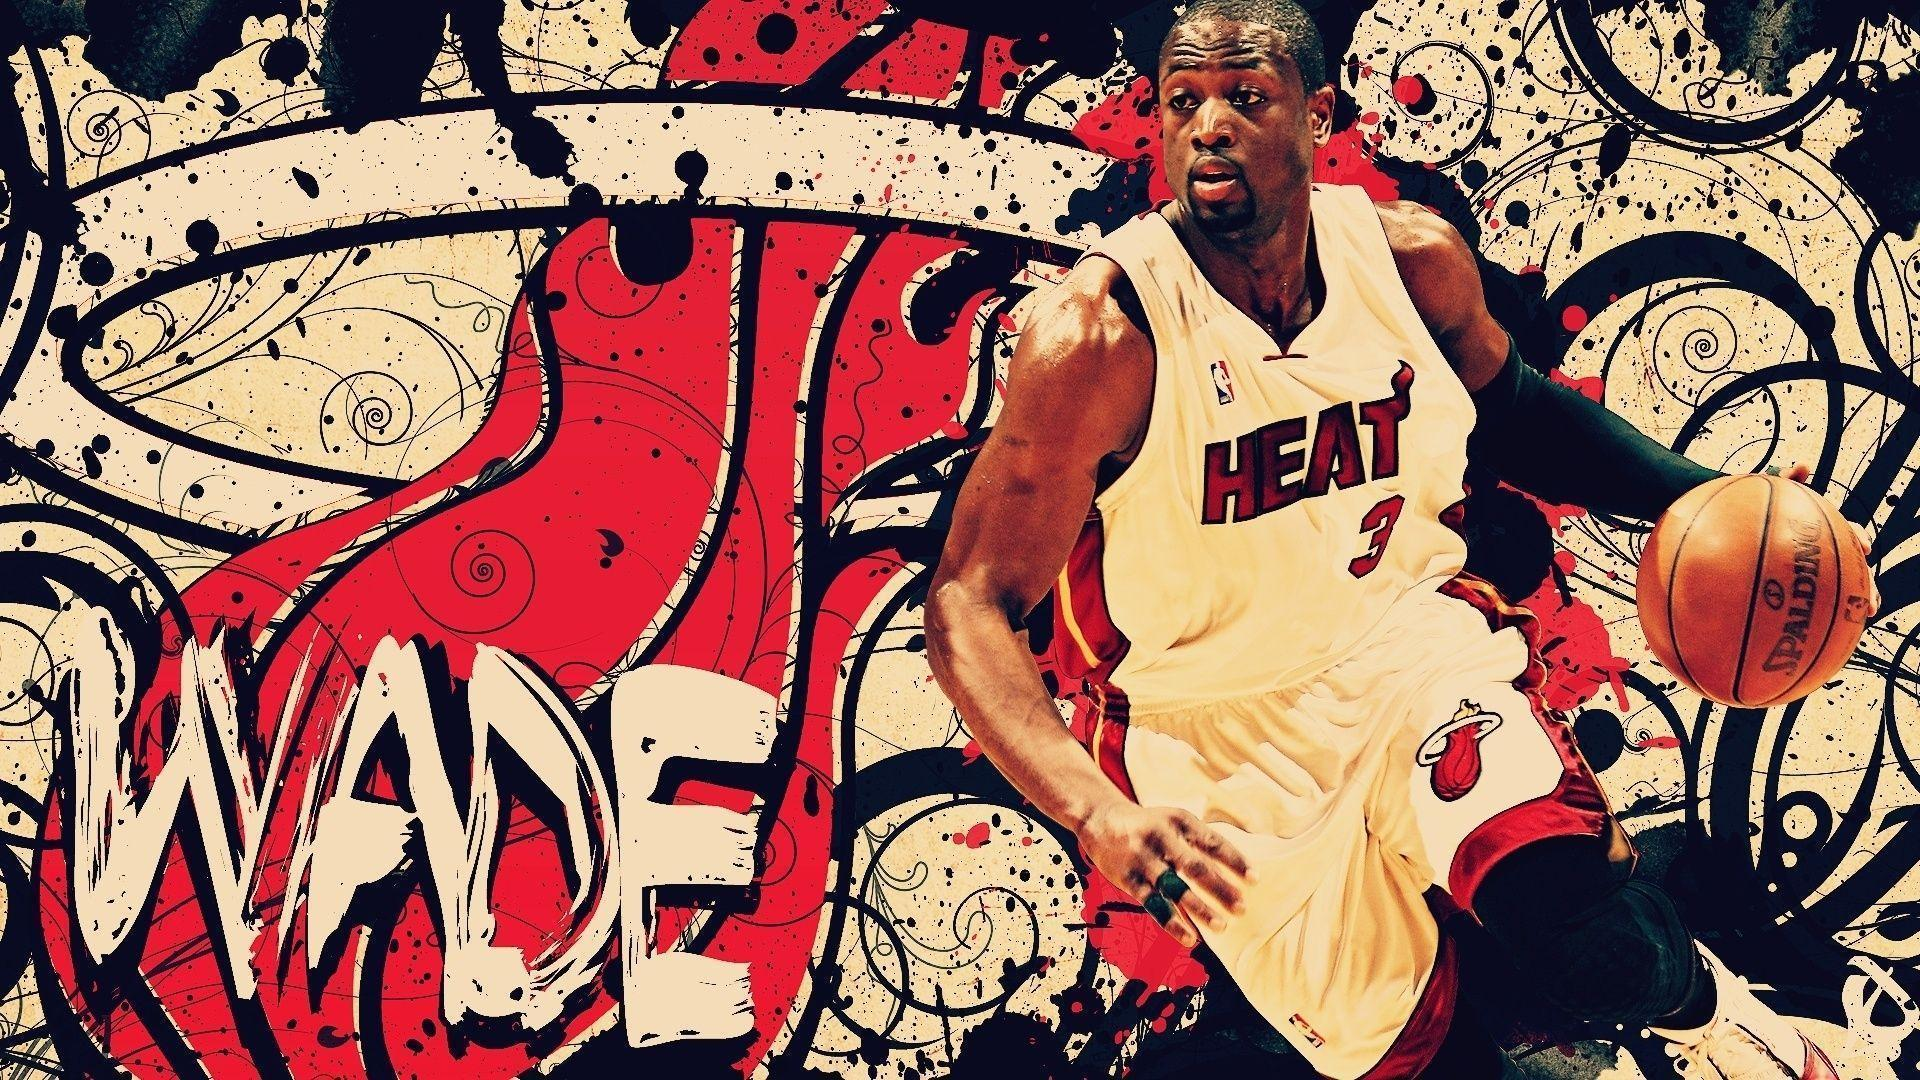 1920x1080 Arts, Basketball, Basketball Players, Miami Heat, Nba ...